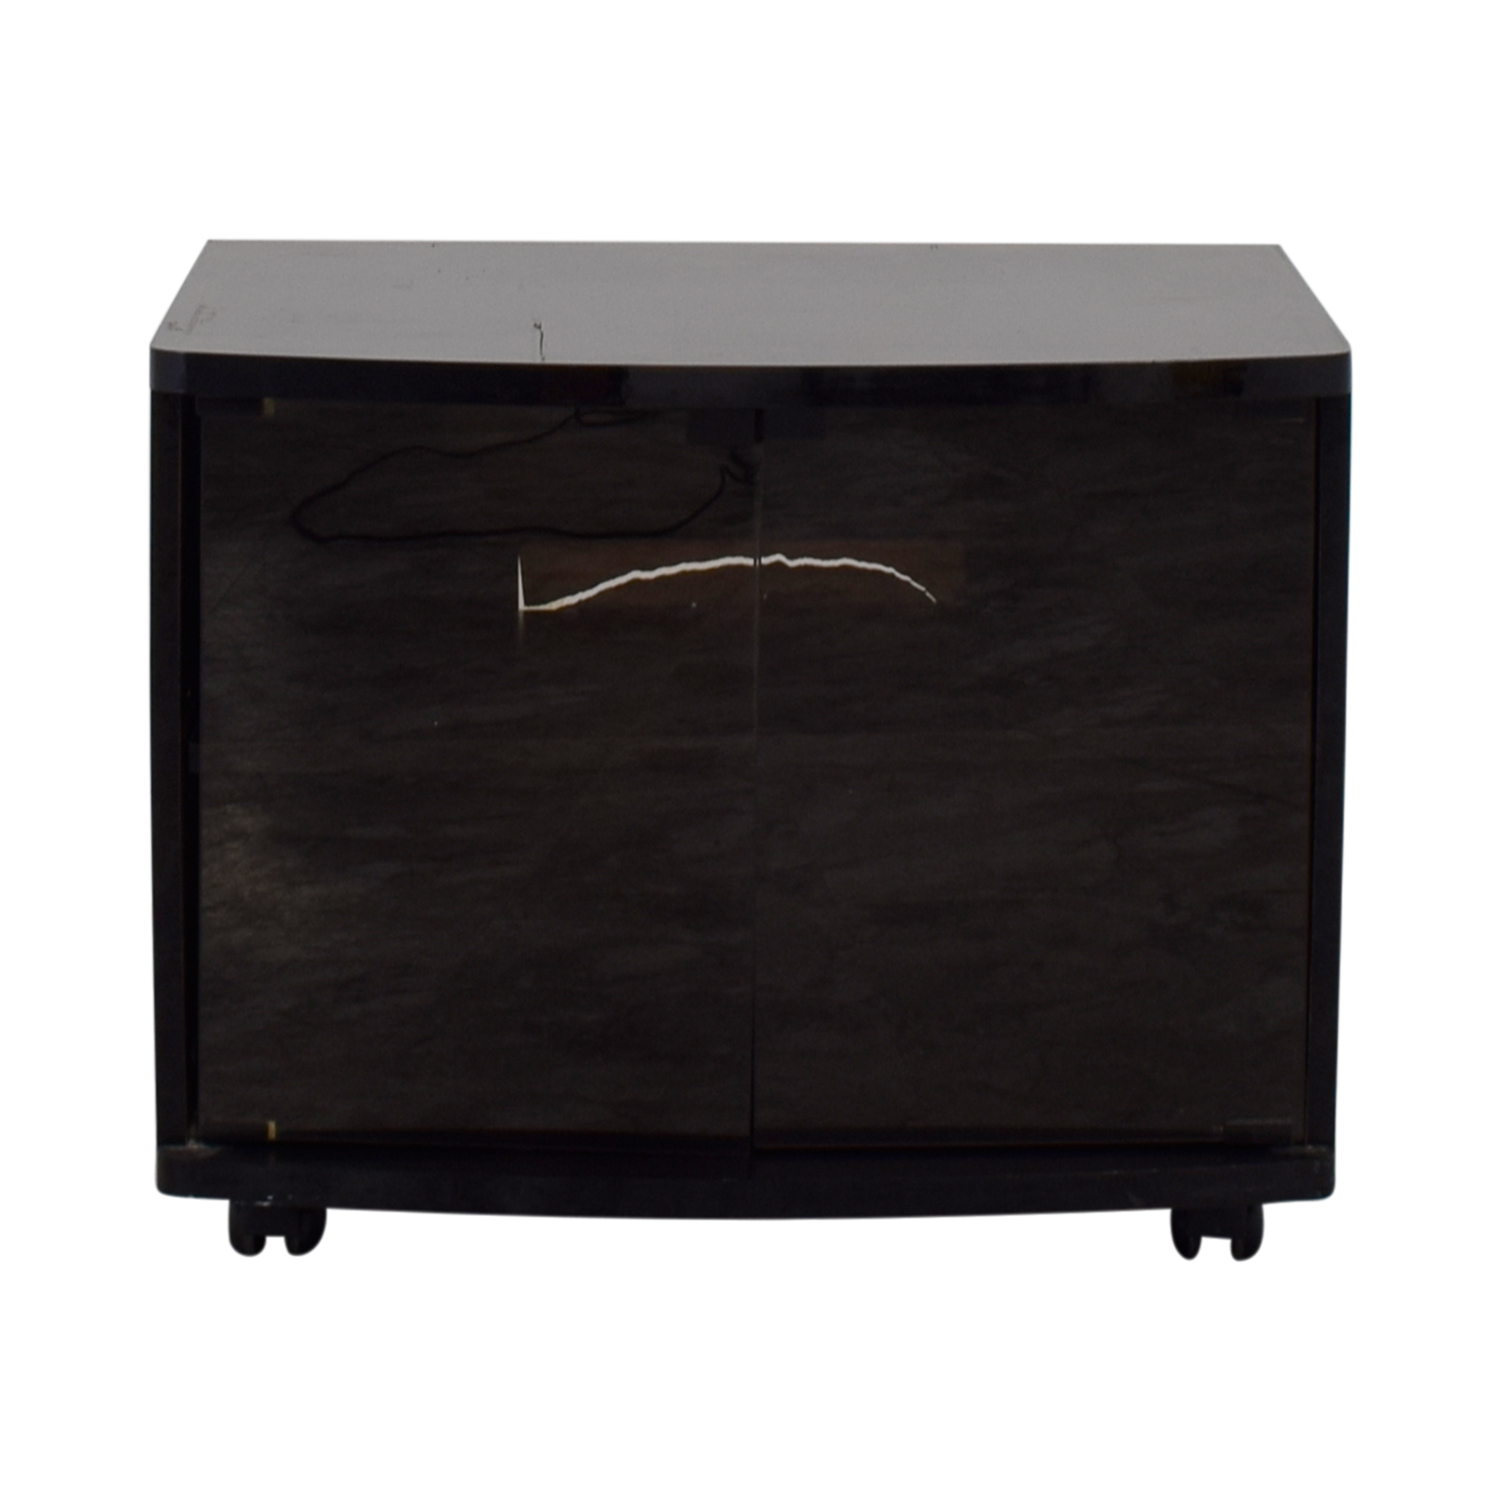 Black Lacquer and Glass Door TV Stand Media Units